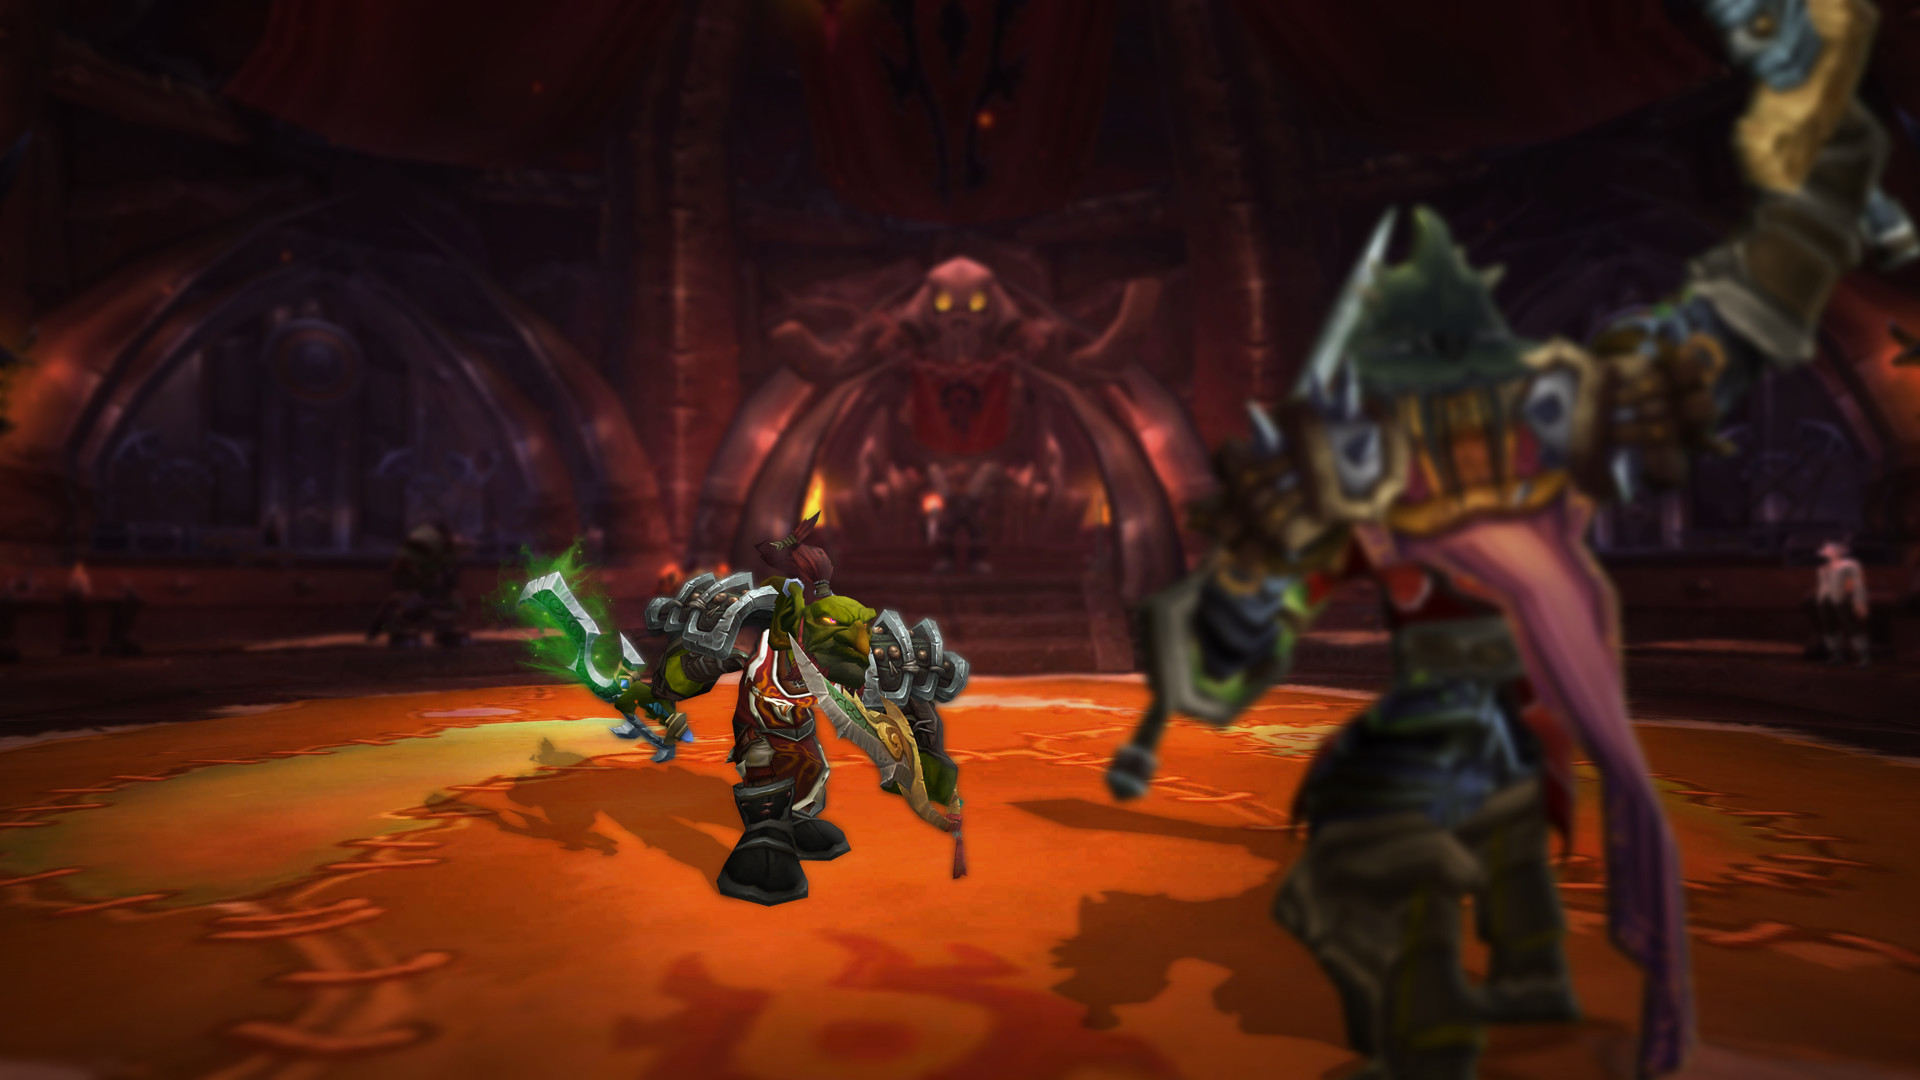 1920x1080 ... World of Warcraft - Goblin Duel! by Pabl0w